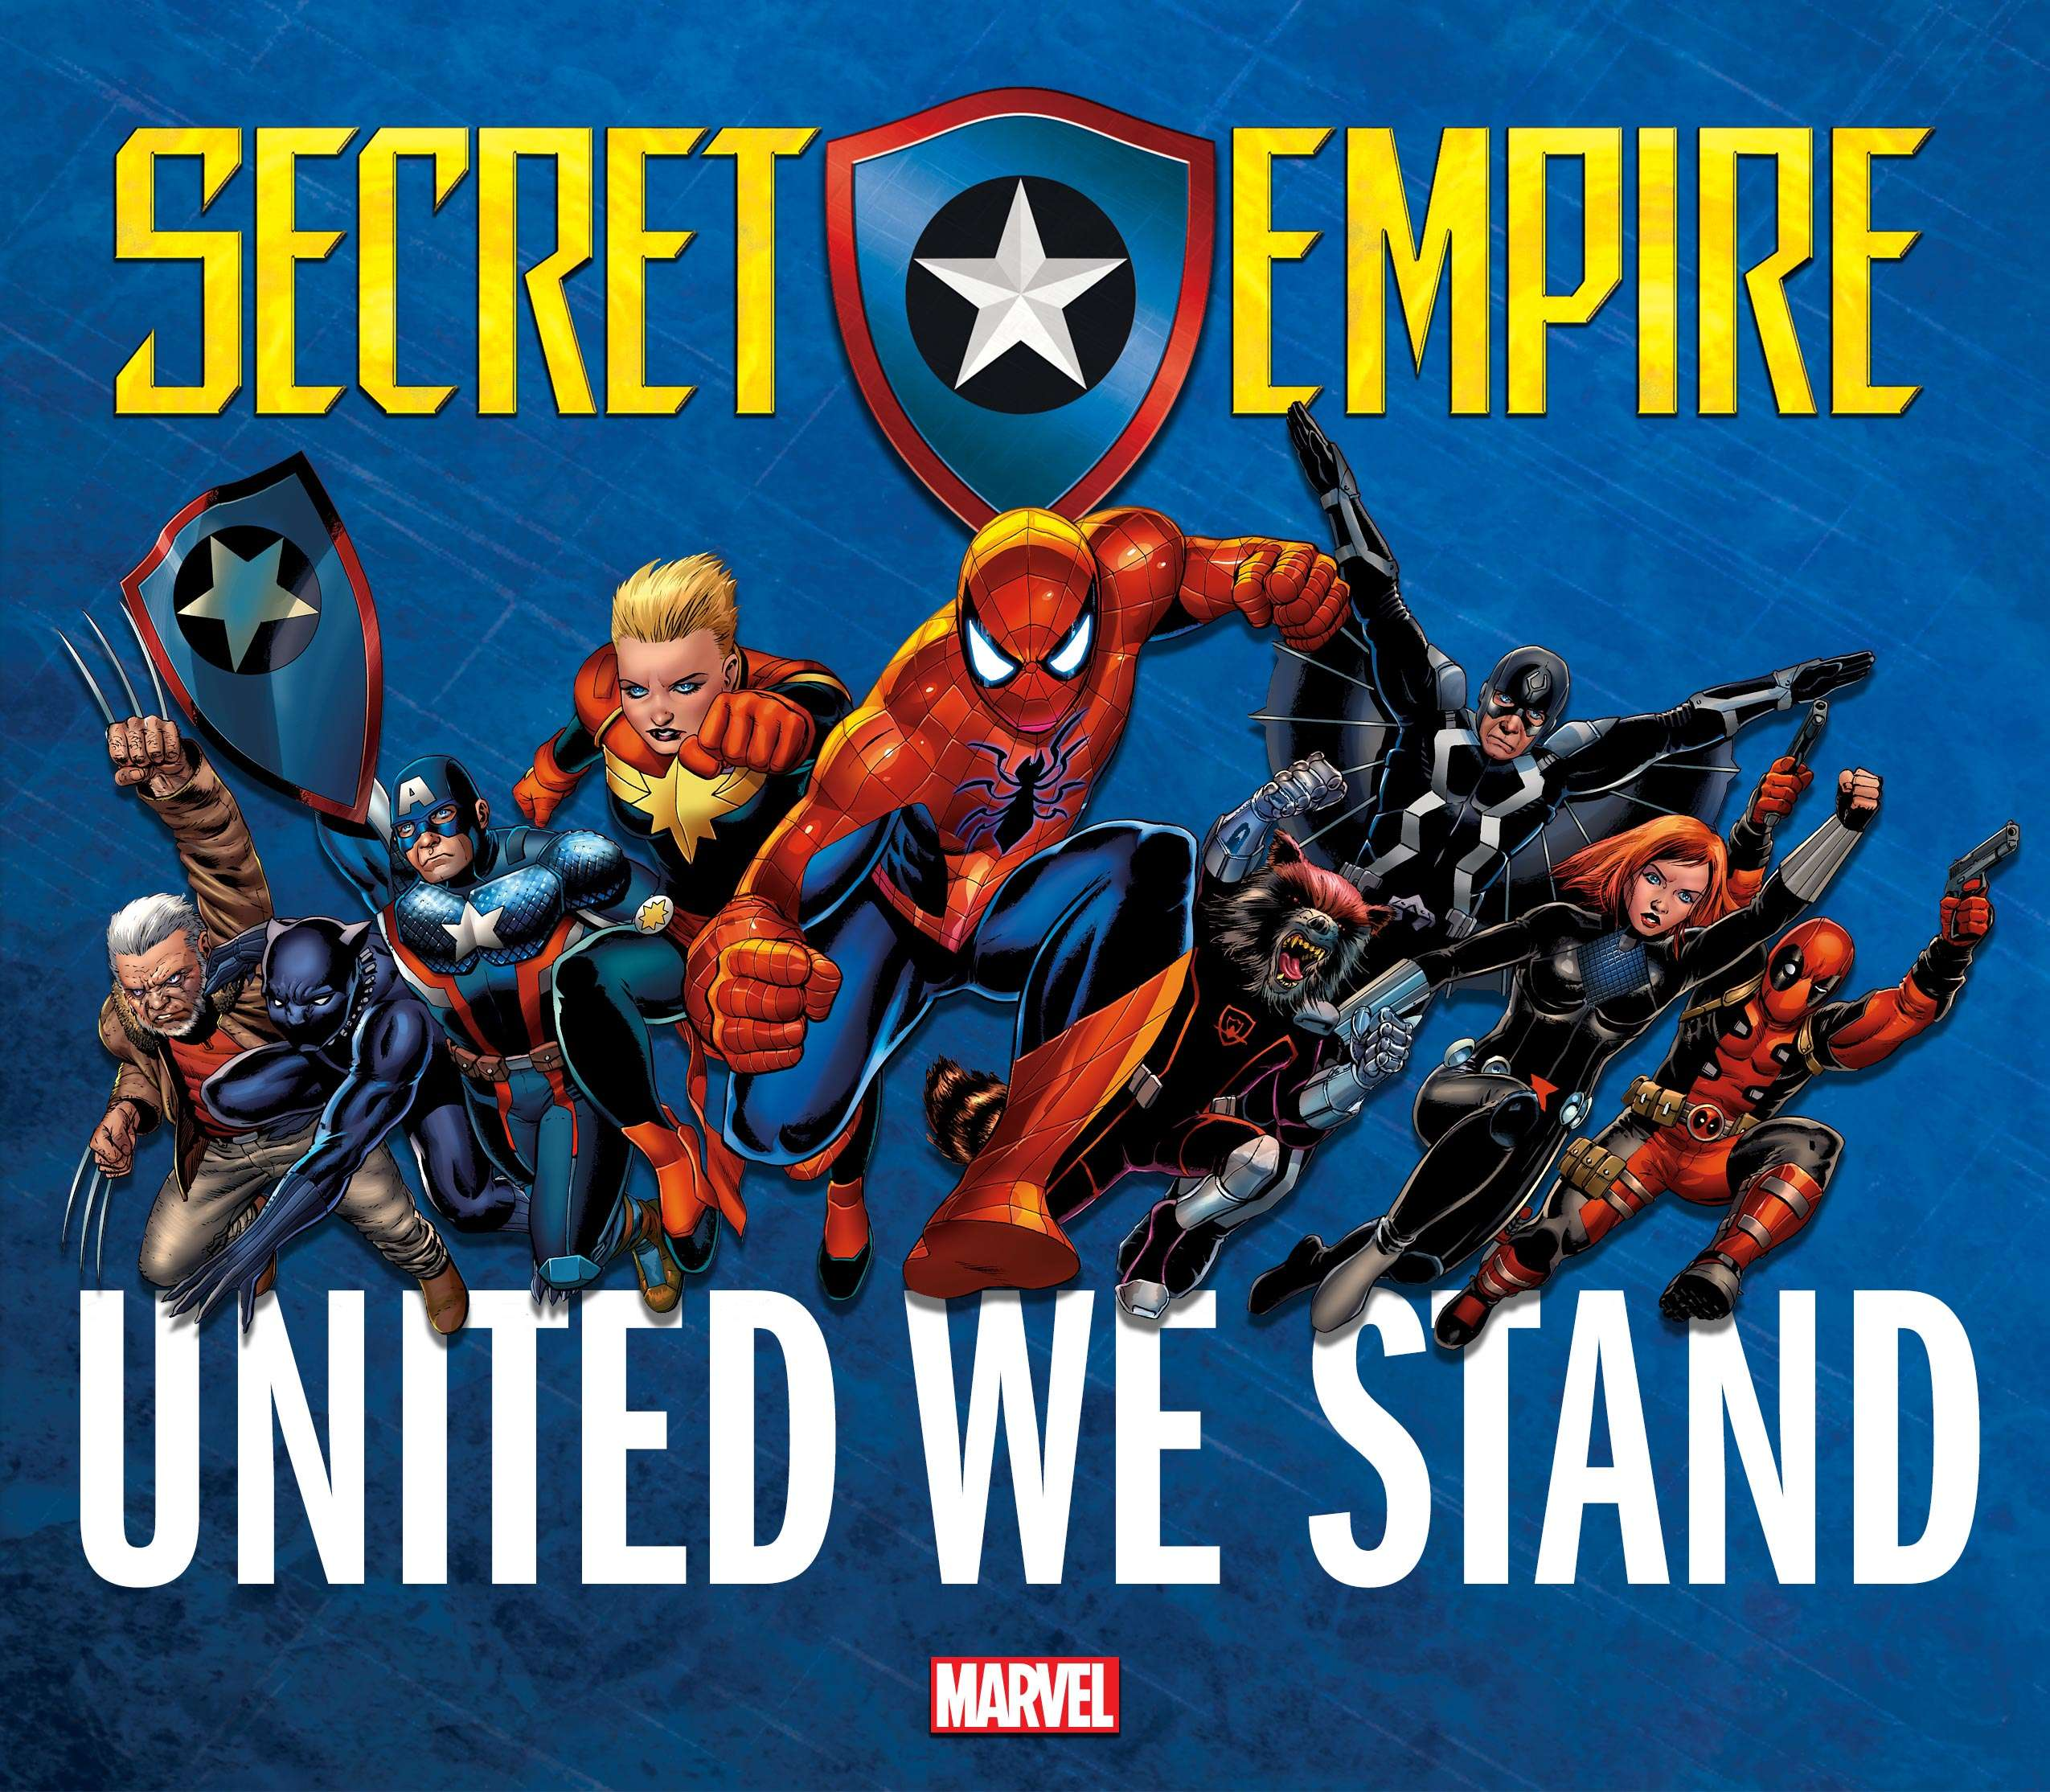 Marvel Heroes Unite In Best Secret Empire Teaser Yet